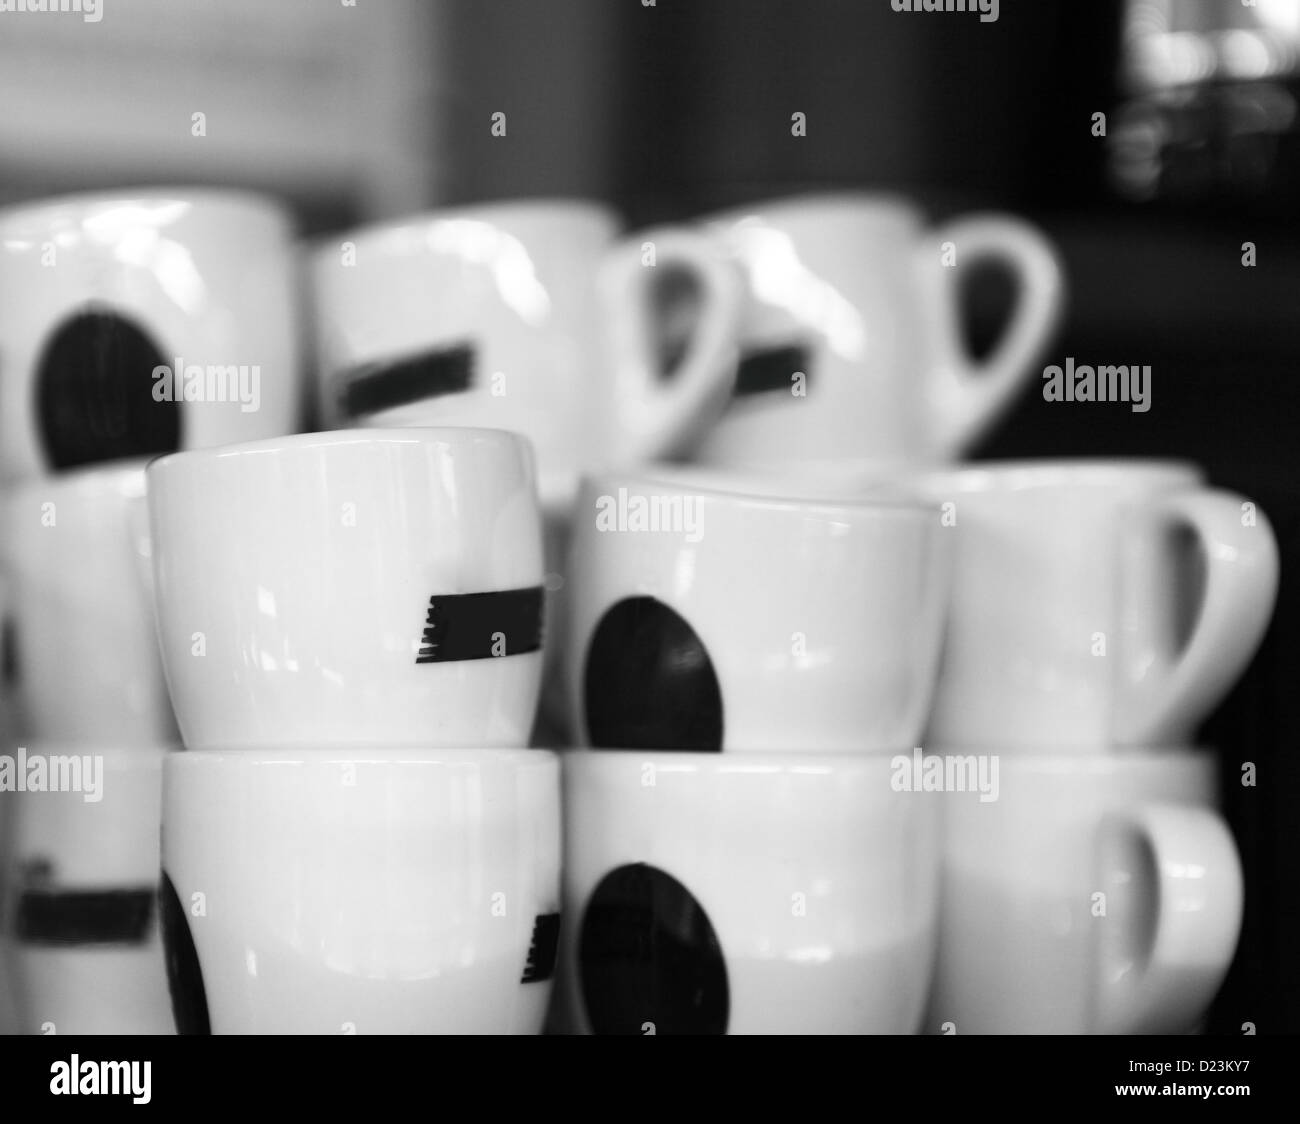 kaffee bar stockfotos kaffee bar bilder alamy. Black Bedroom Furniture Sets. Home Design Ideas